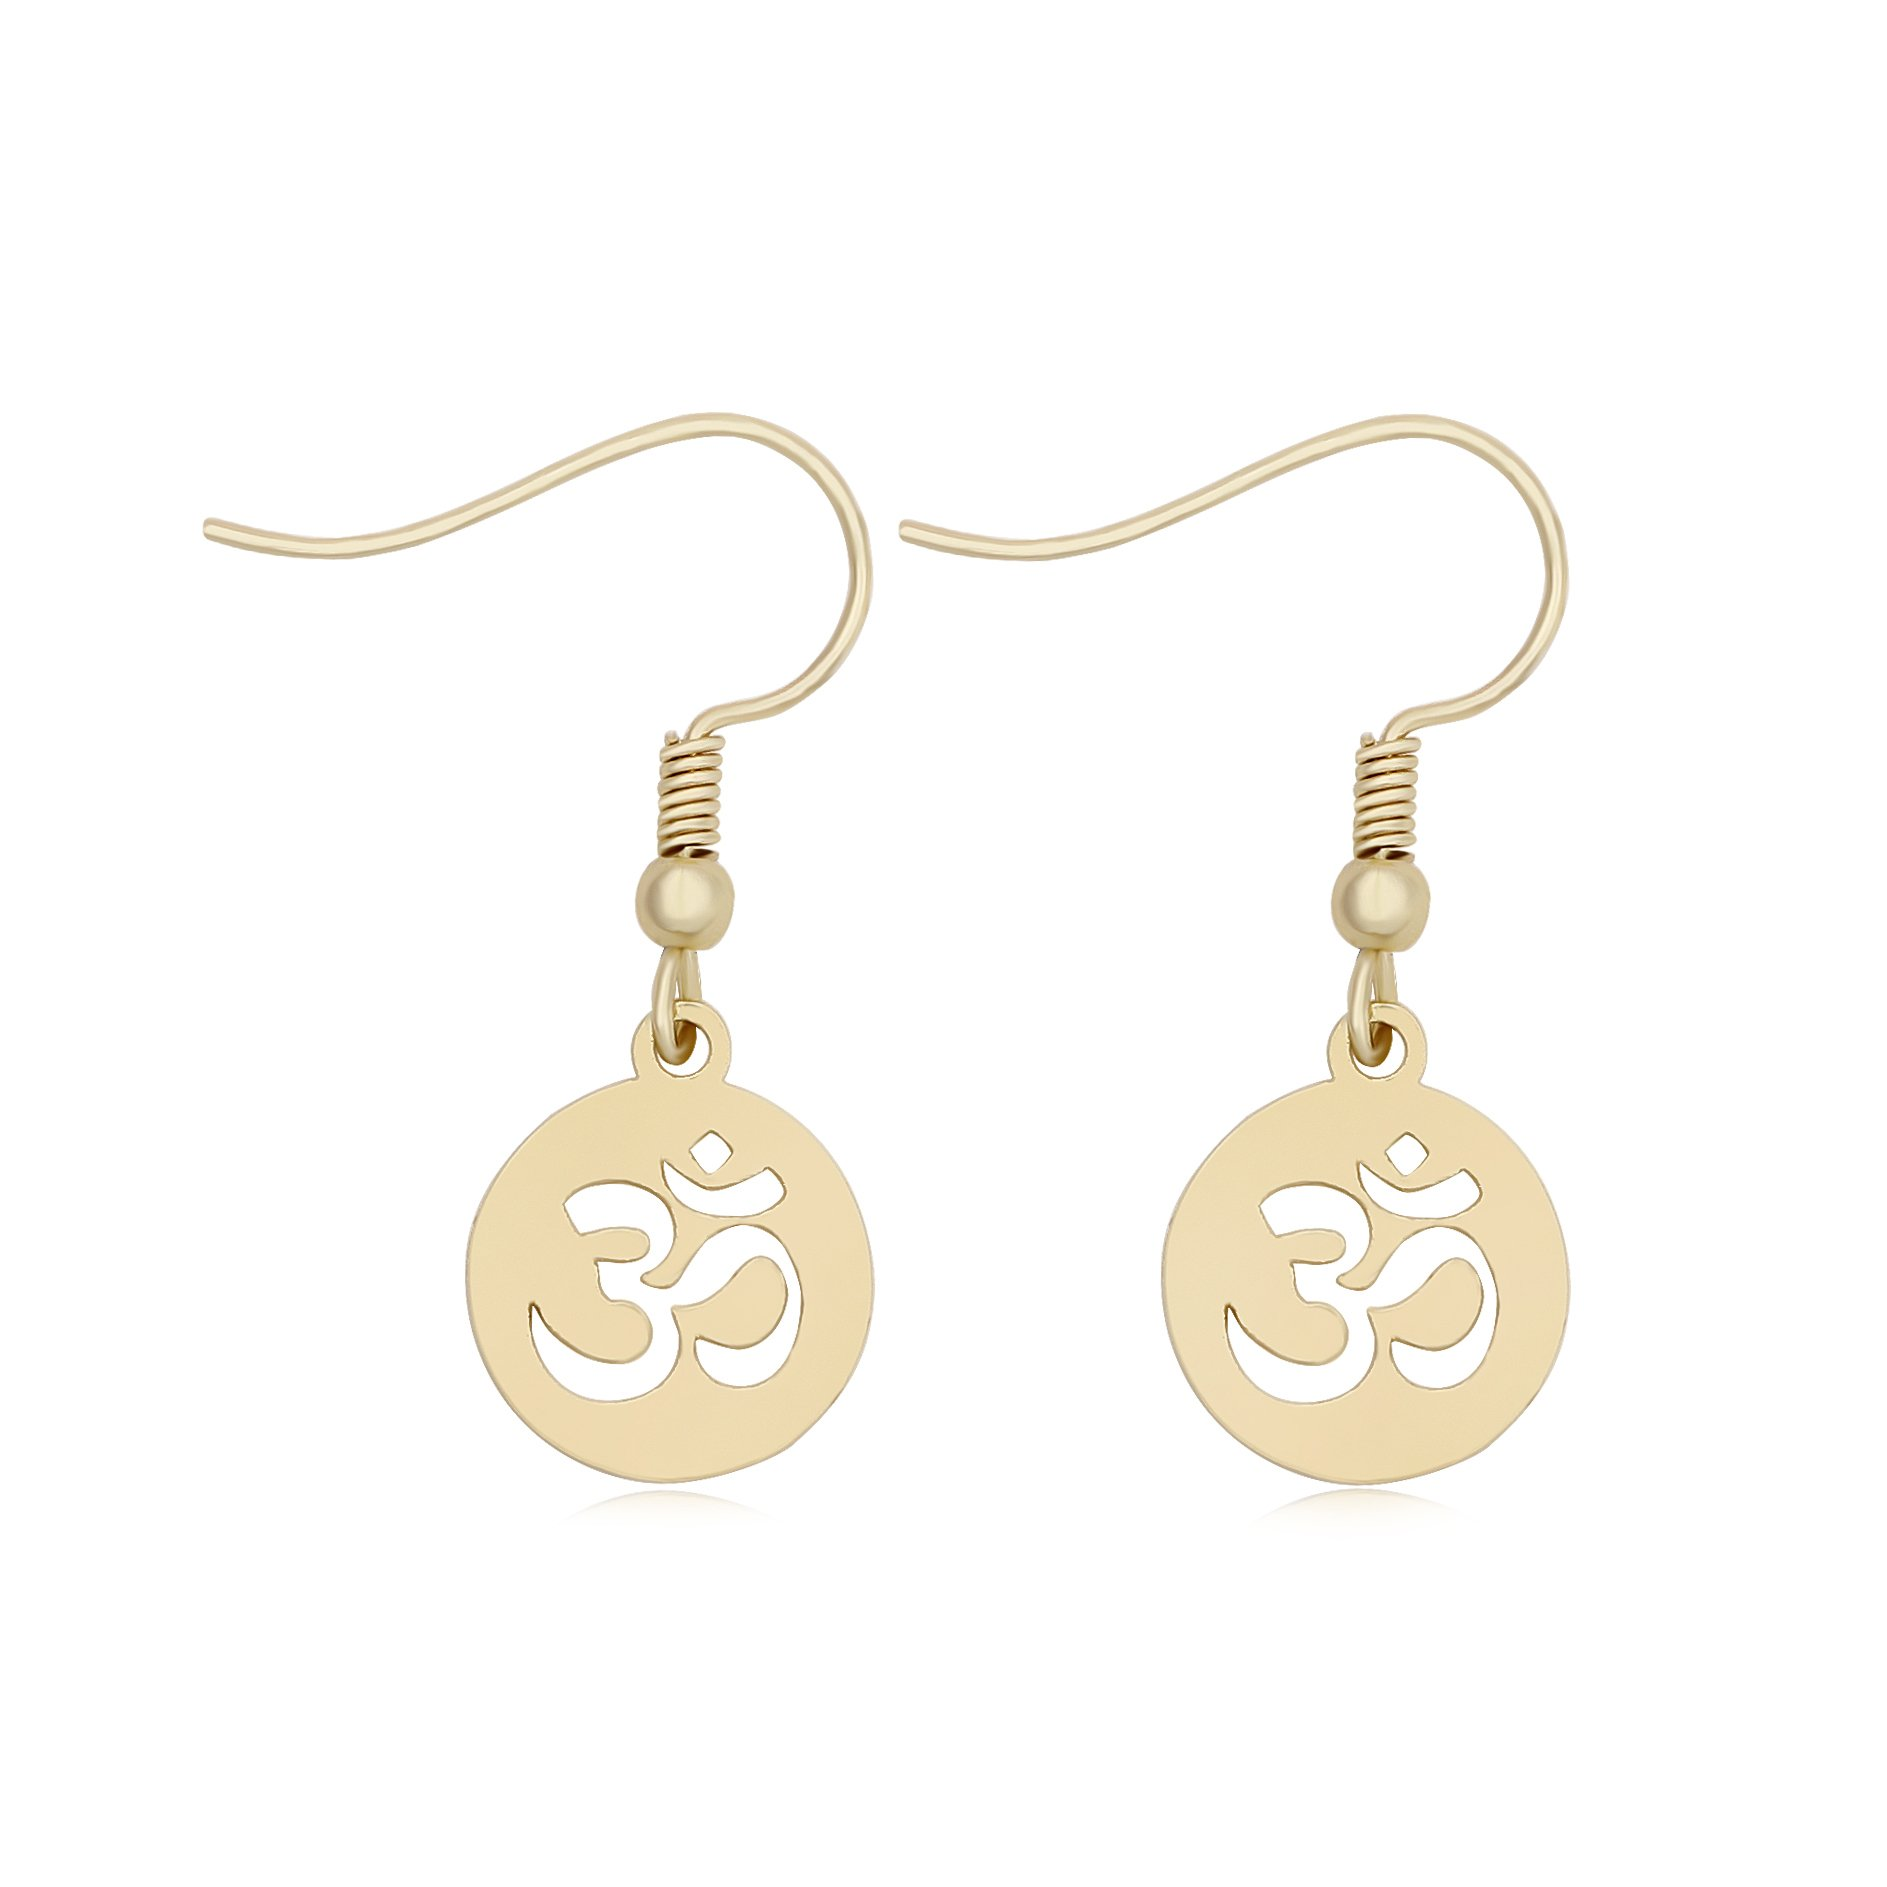 TUSHUO Simple Cute Aum Om Ohm Sanskrit Symbol Hollow Yoga Charm Pendant Earring Yoga Jewelry (Gold)